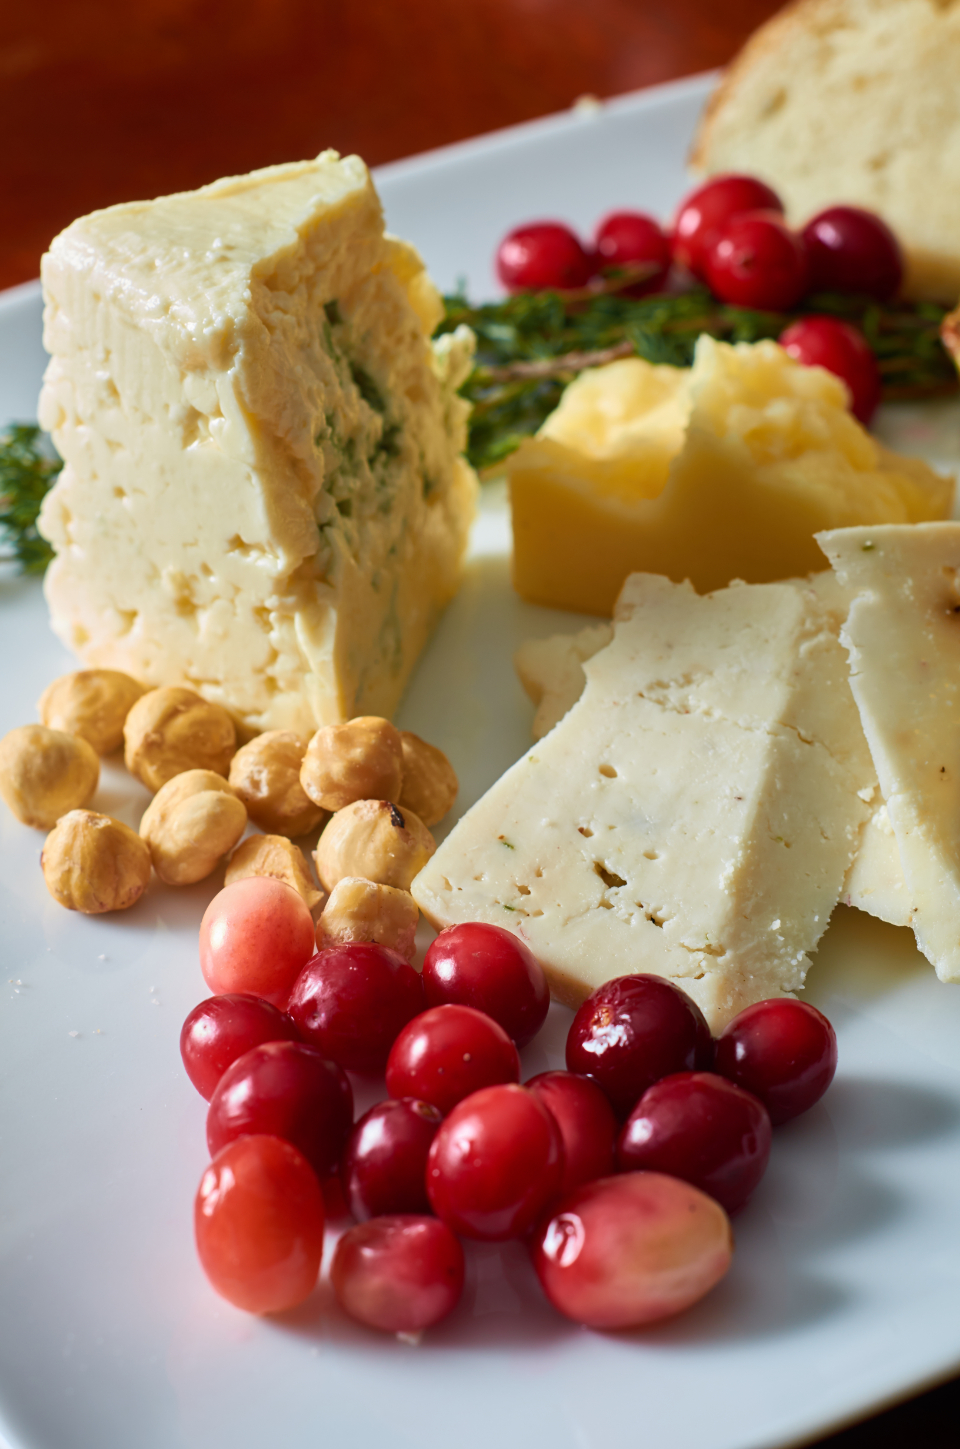 Free stock photo of cheese plate